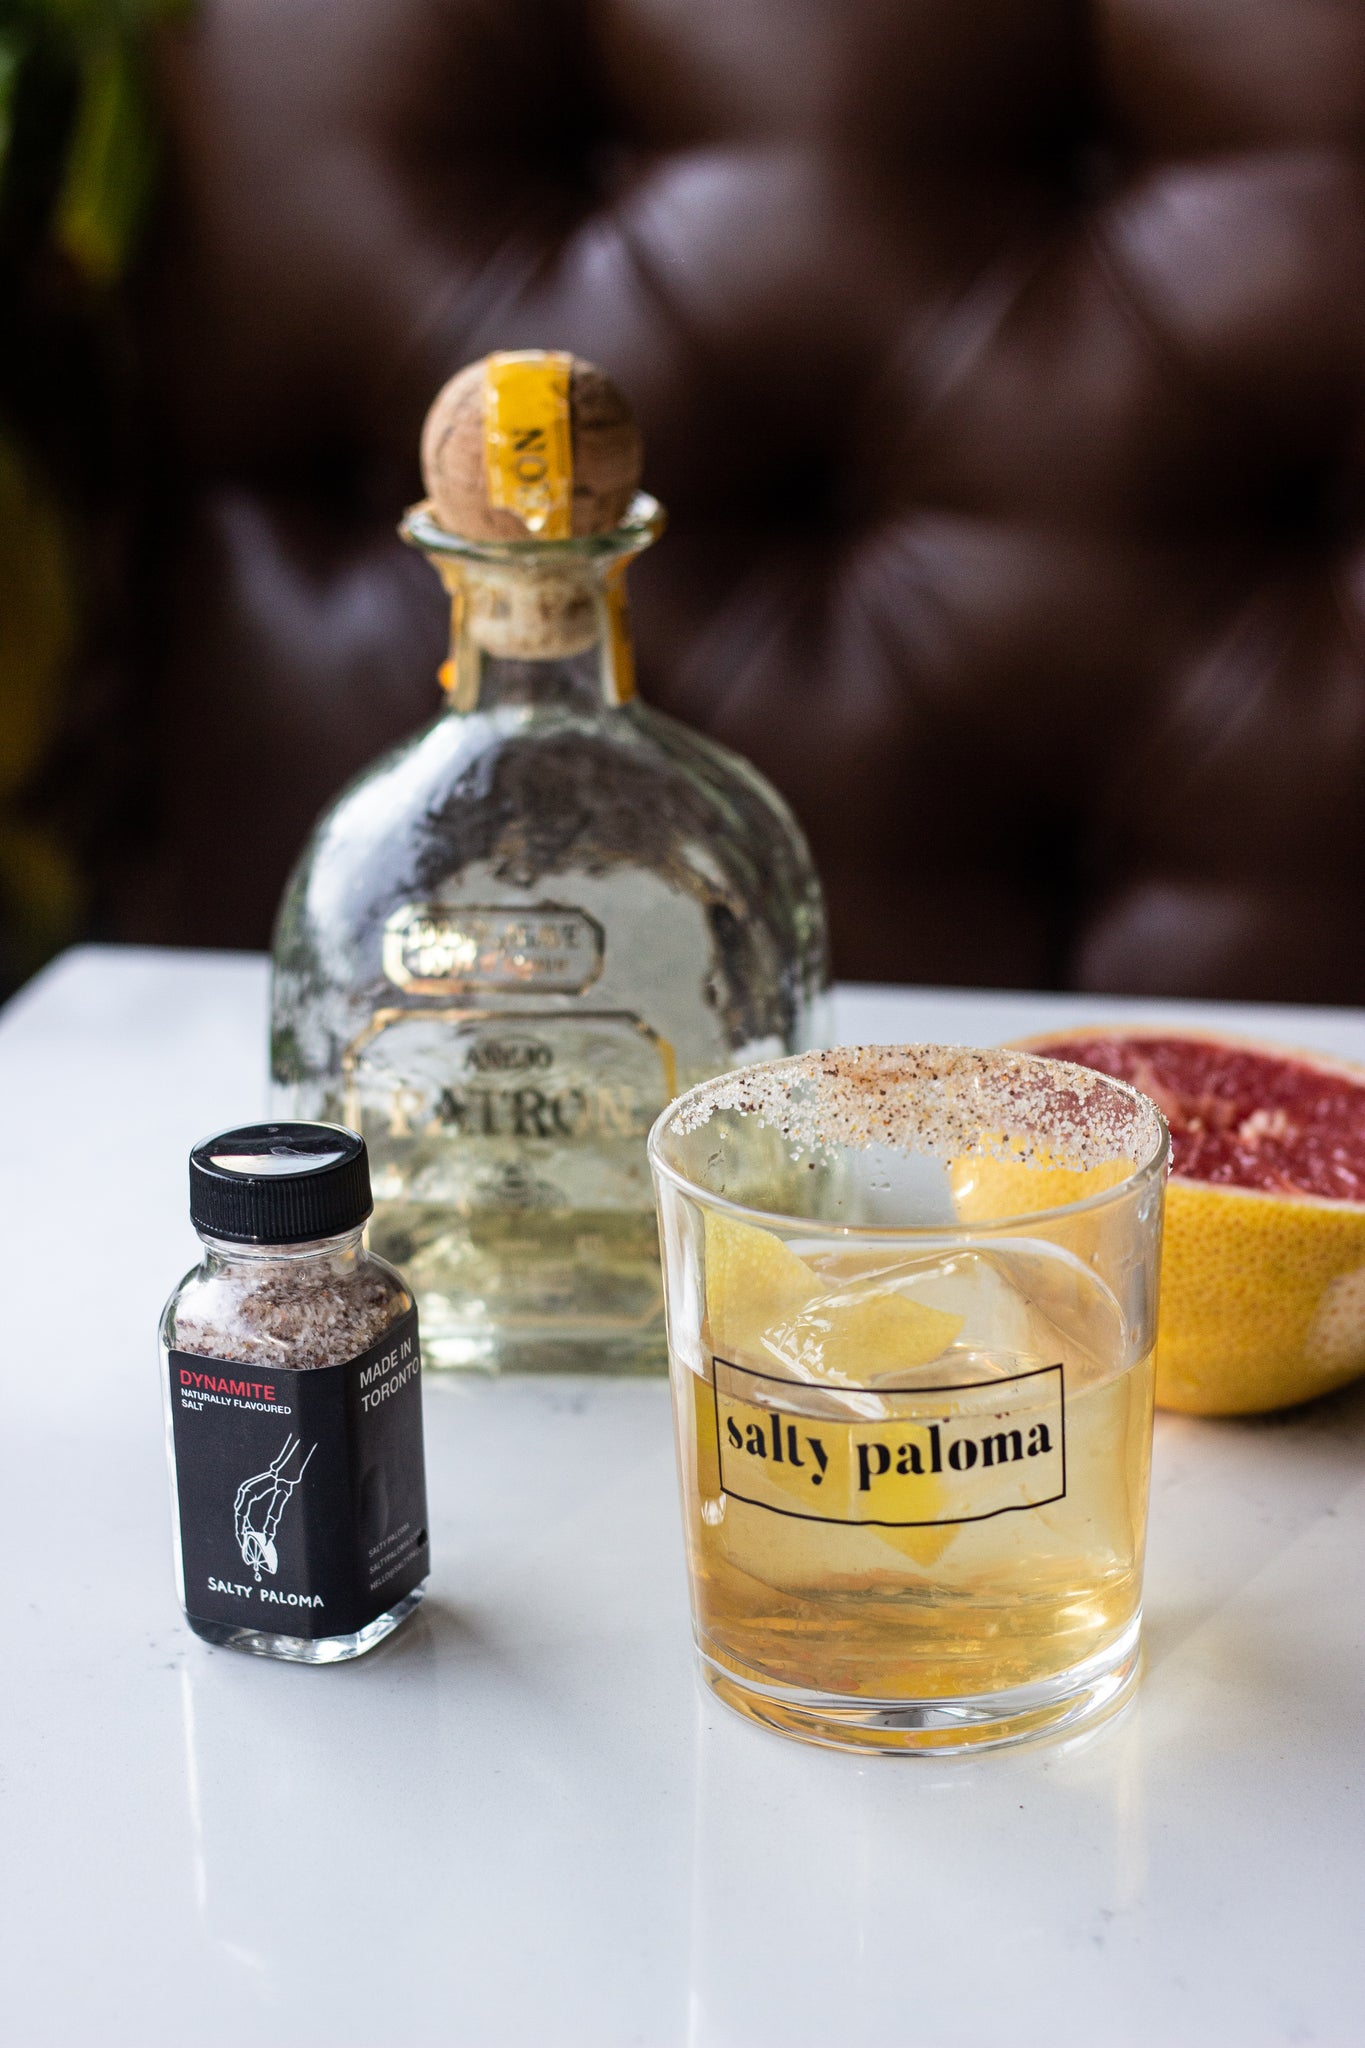 salty paloma patron reposado old fashioned recipe